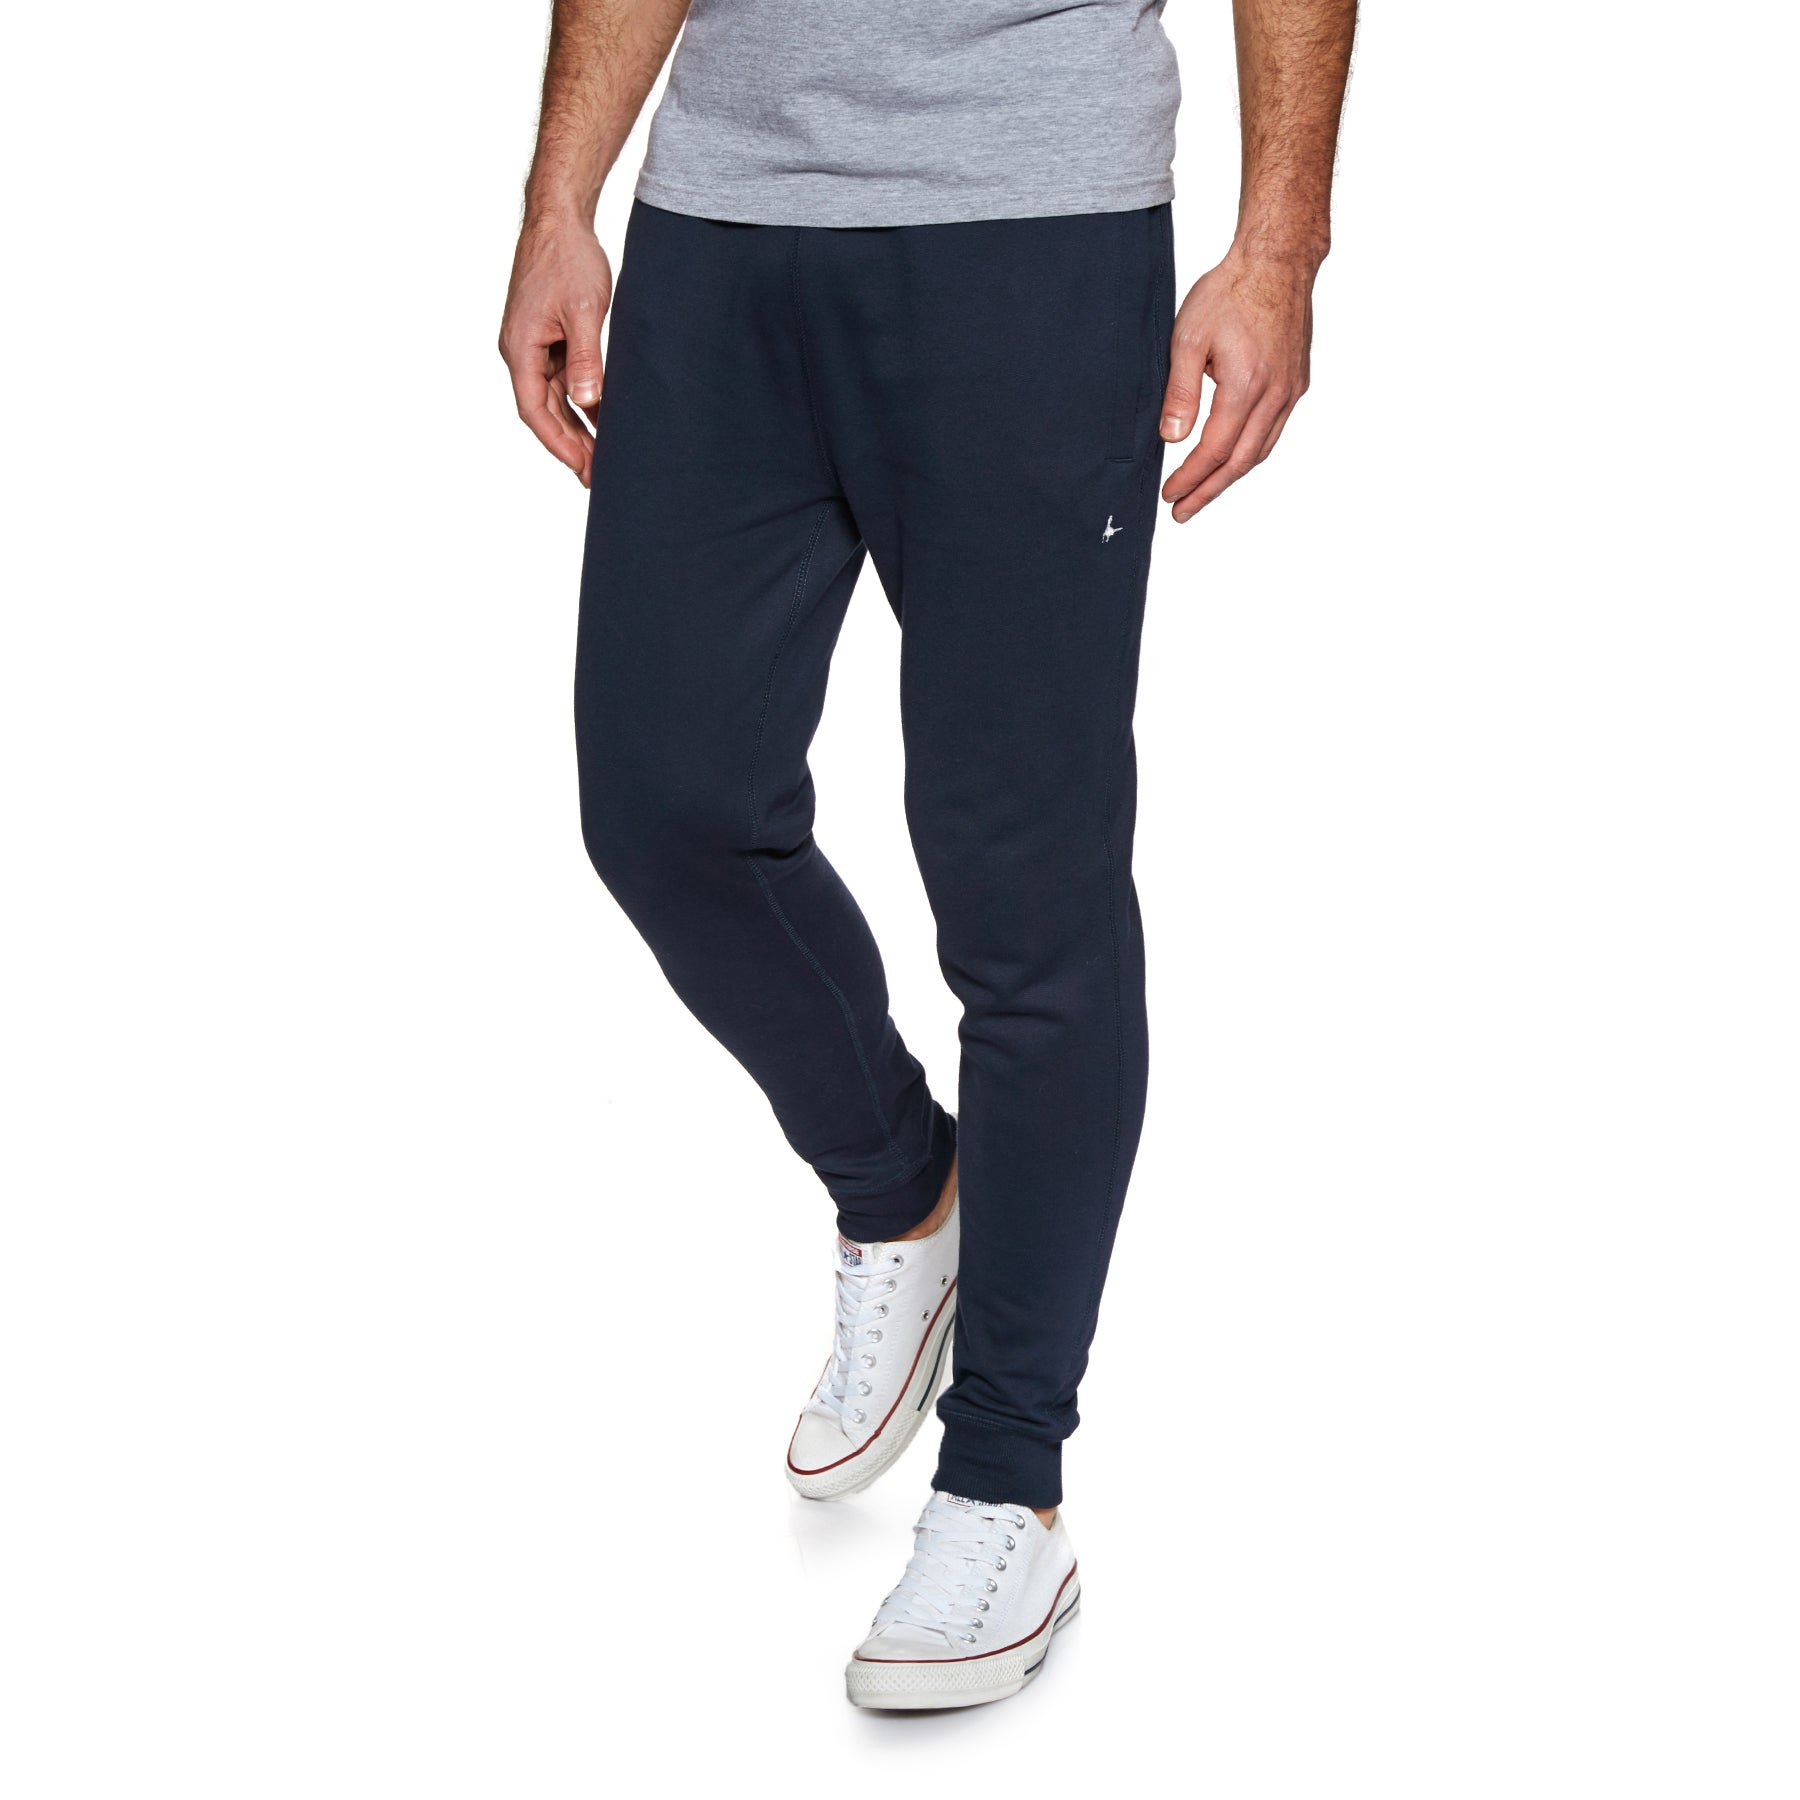 Jack Wills Haydor Jogging Pants - Navy